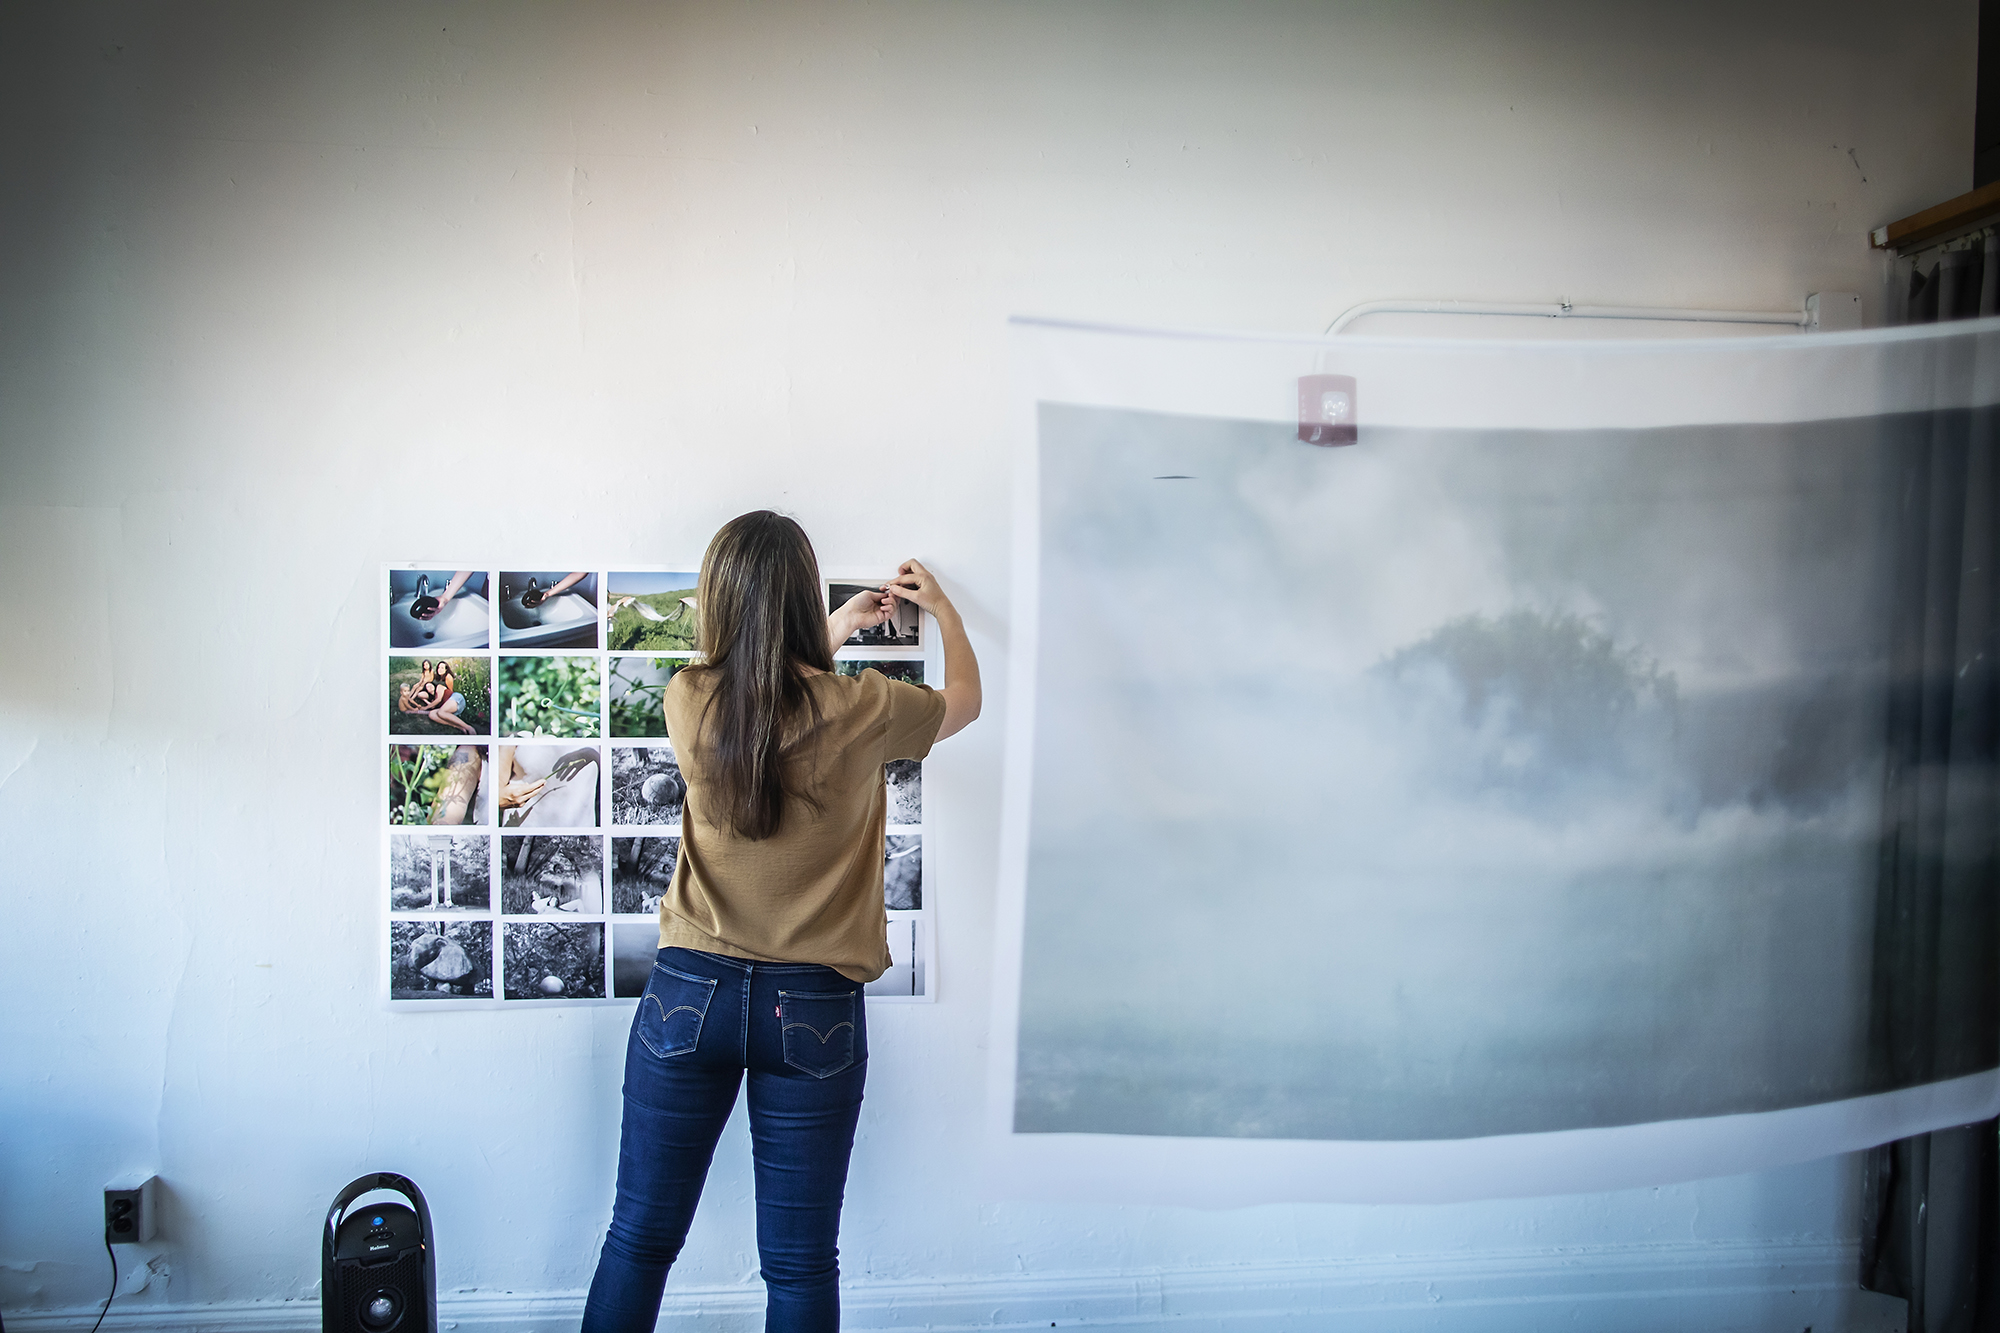 Amrita Stützle in her studio with back turned to camera pins a grid of images to her wall.